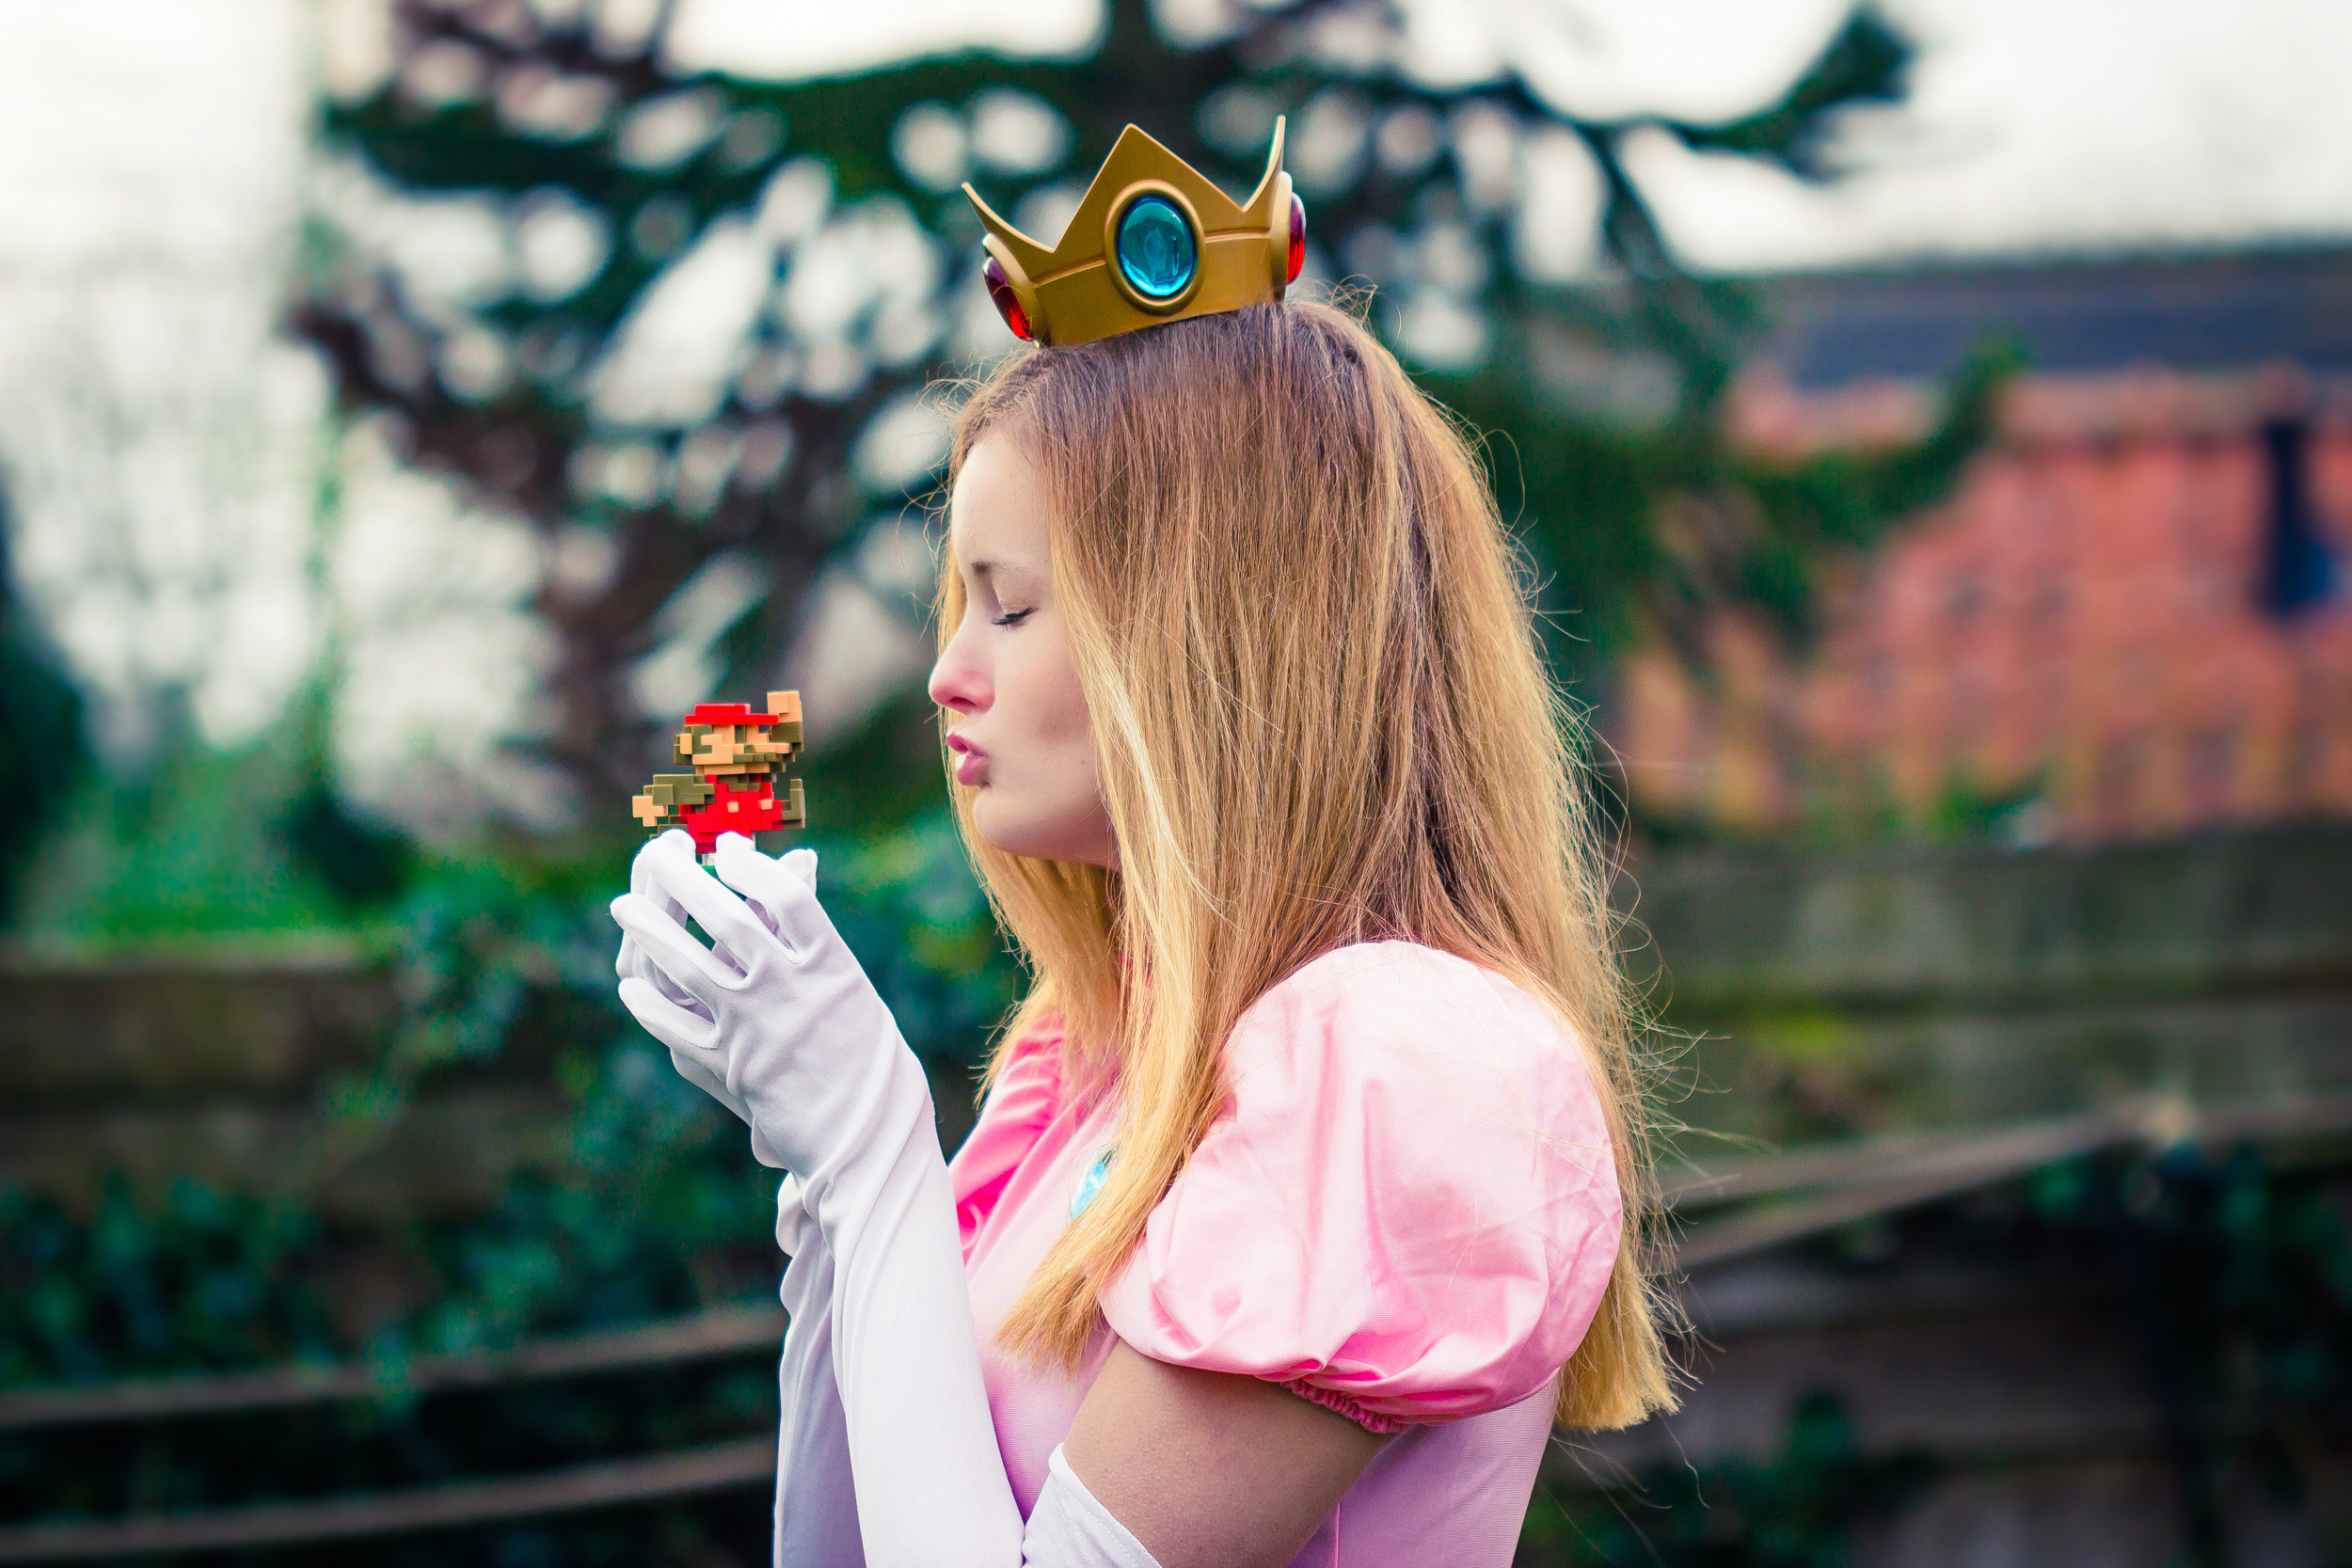 Tjitske-Princess-Peach-Shoot00001